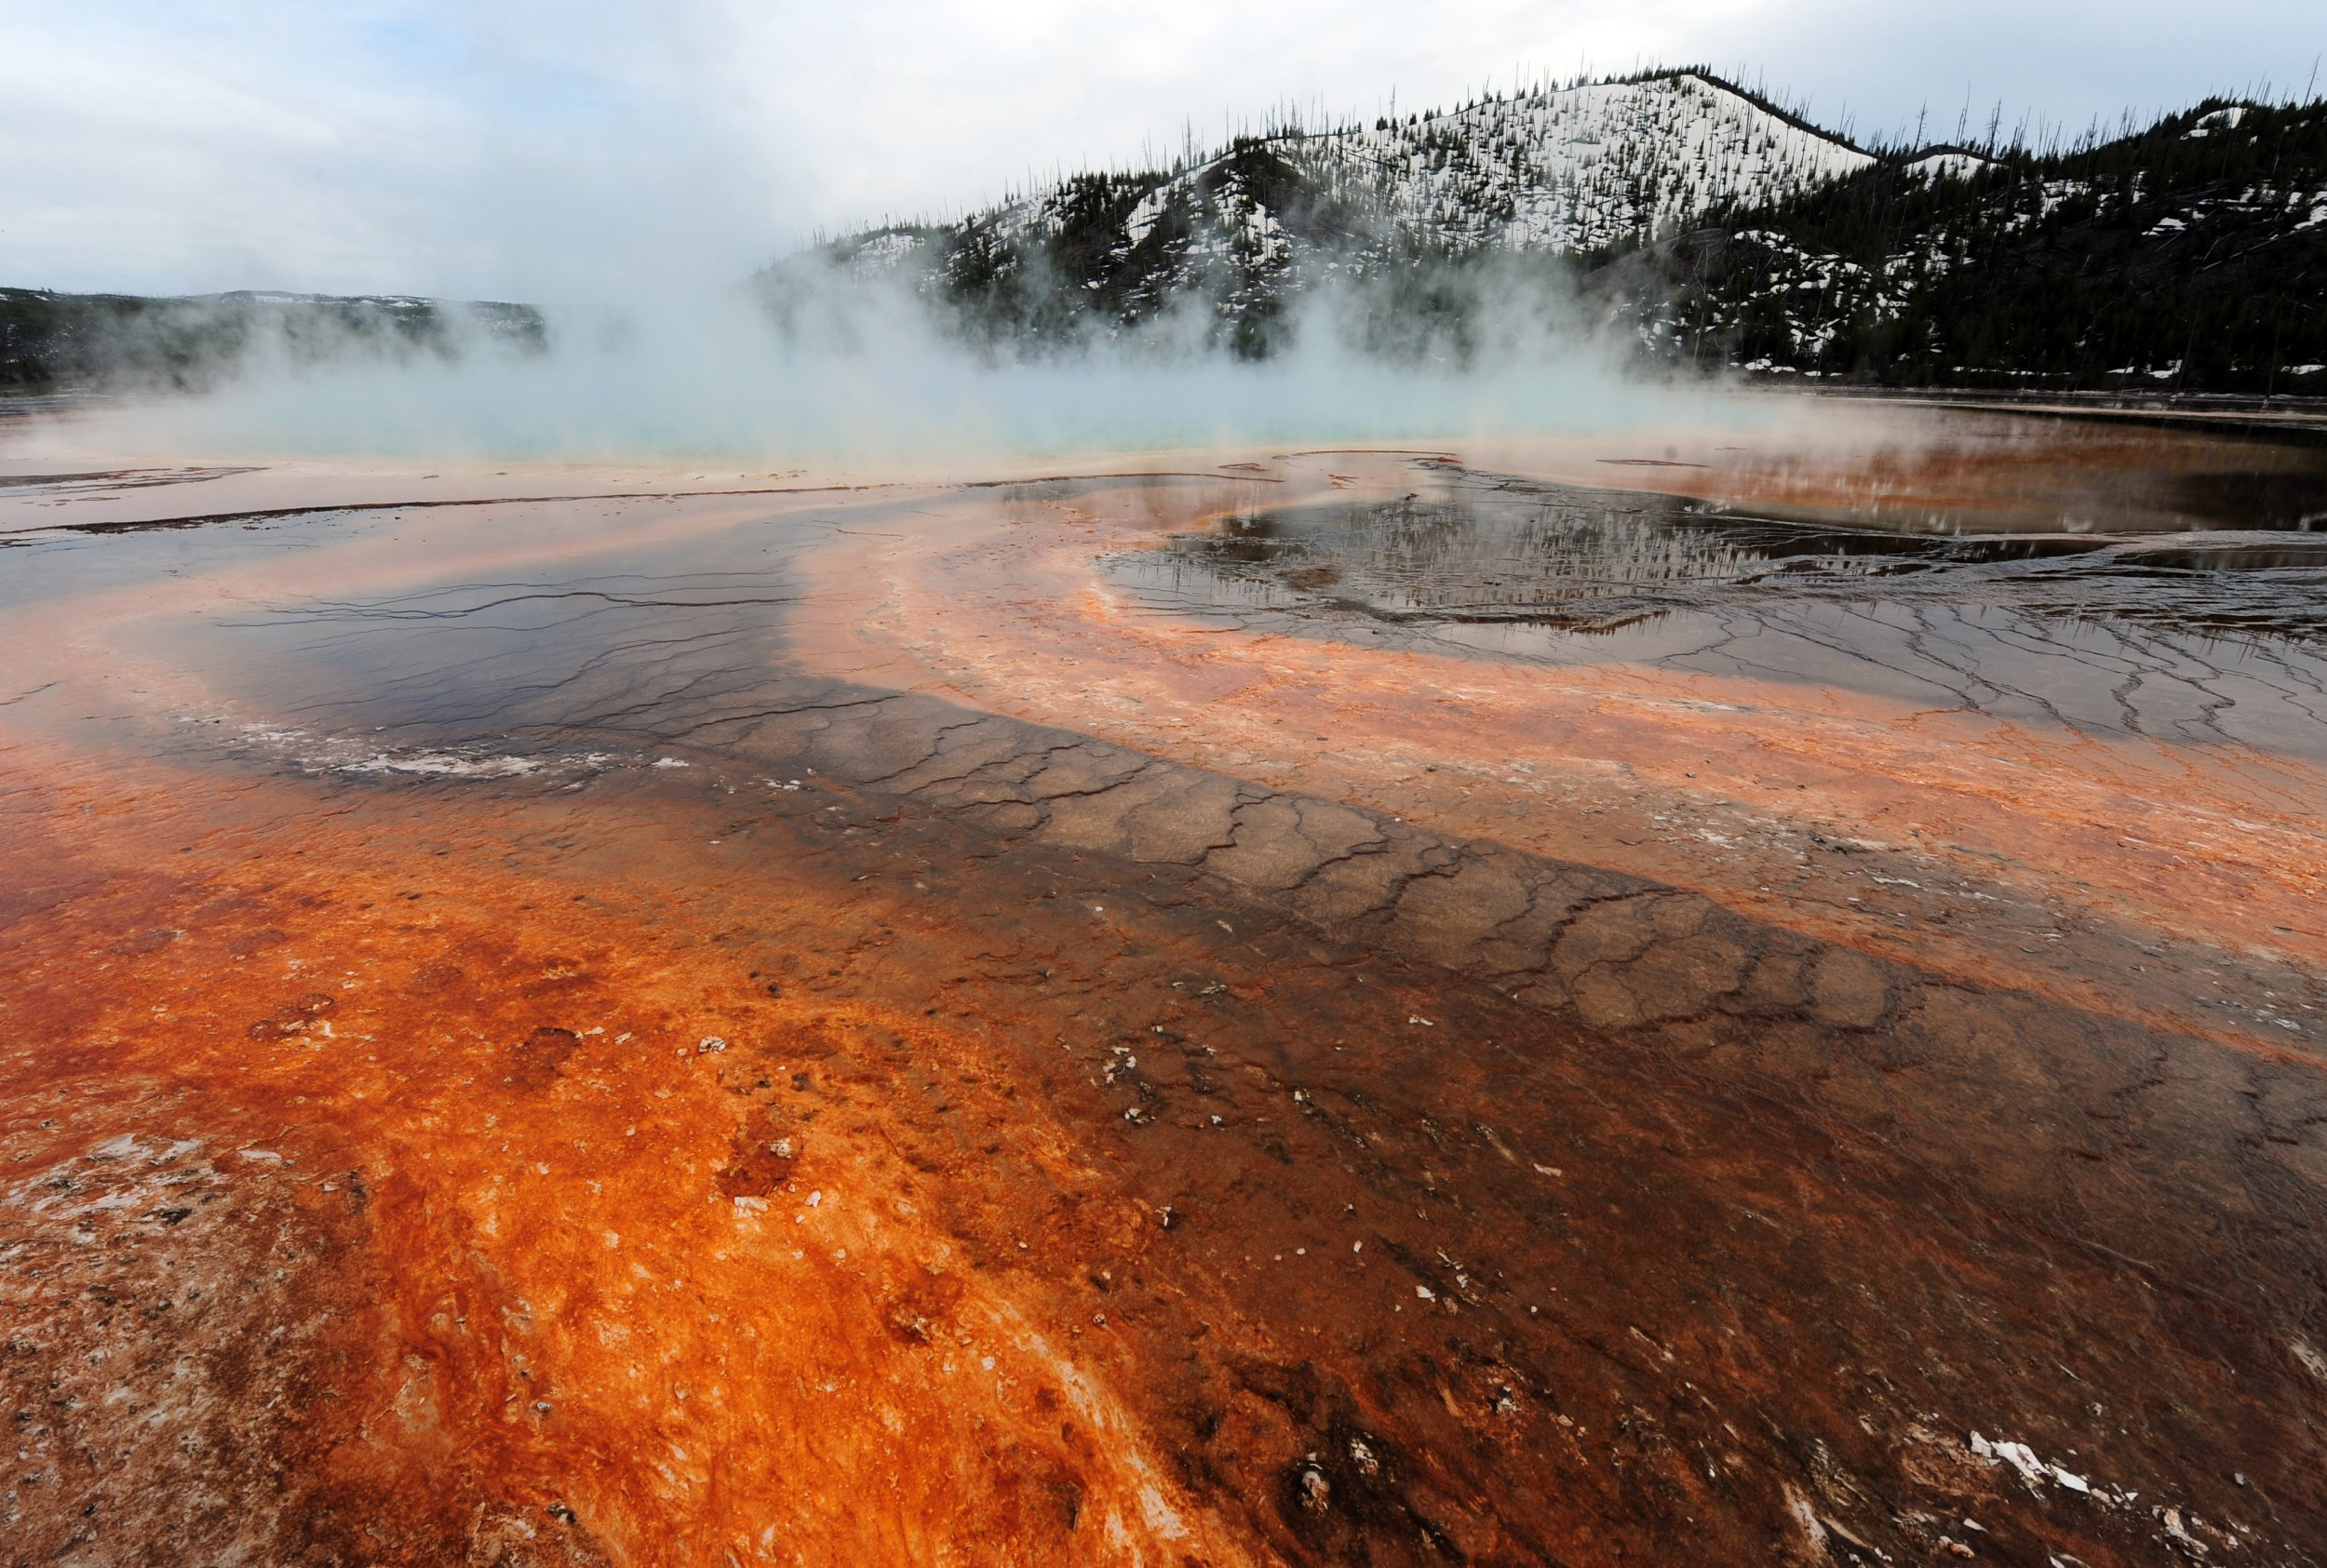 Yellowstone Supervolcano Could Power Electric Cars of the Future